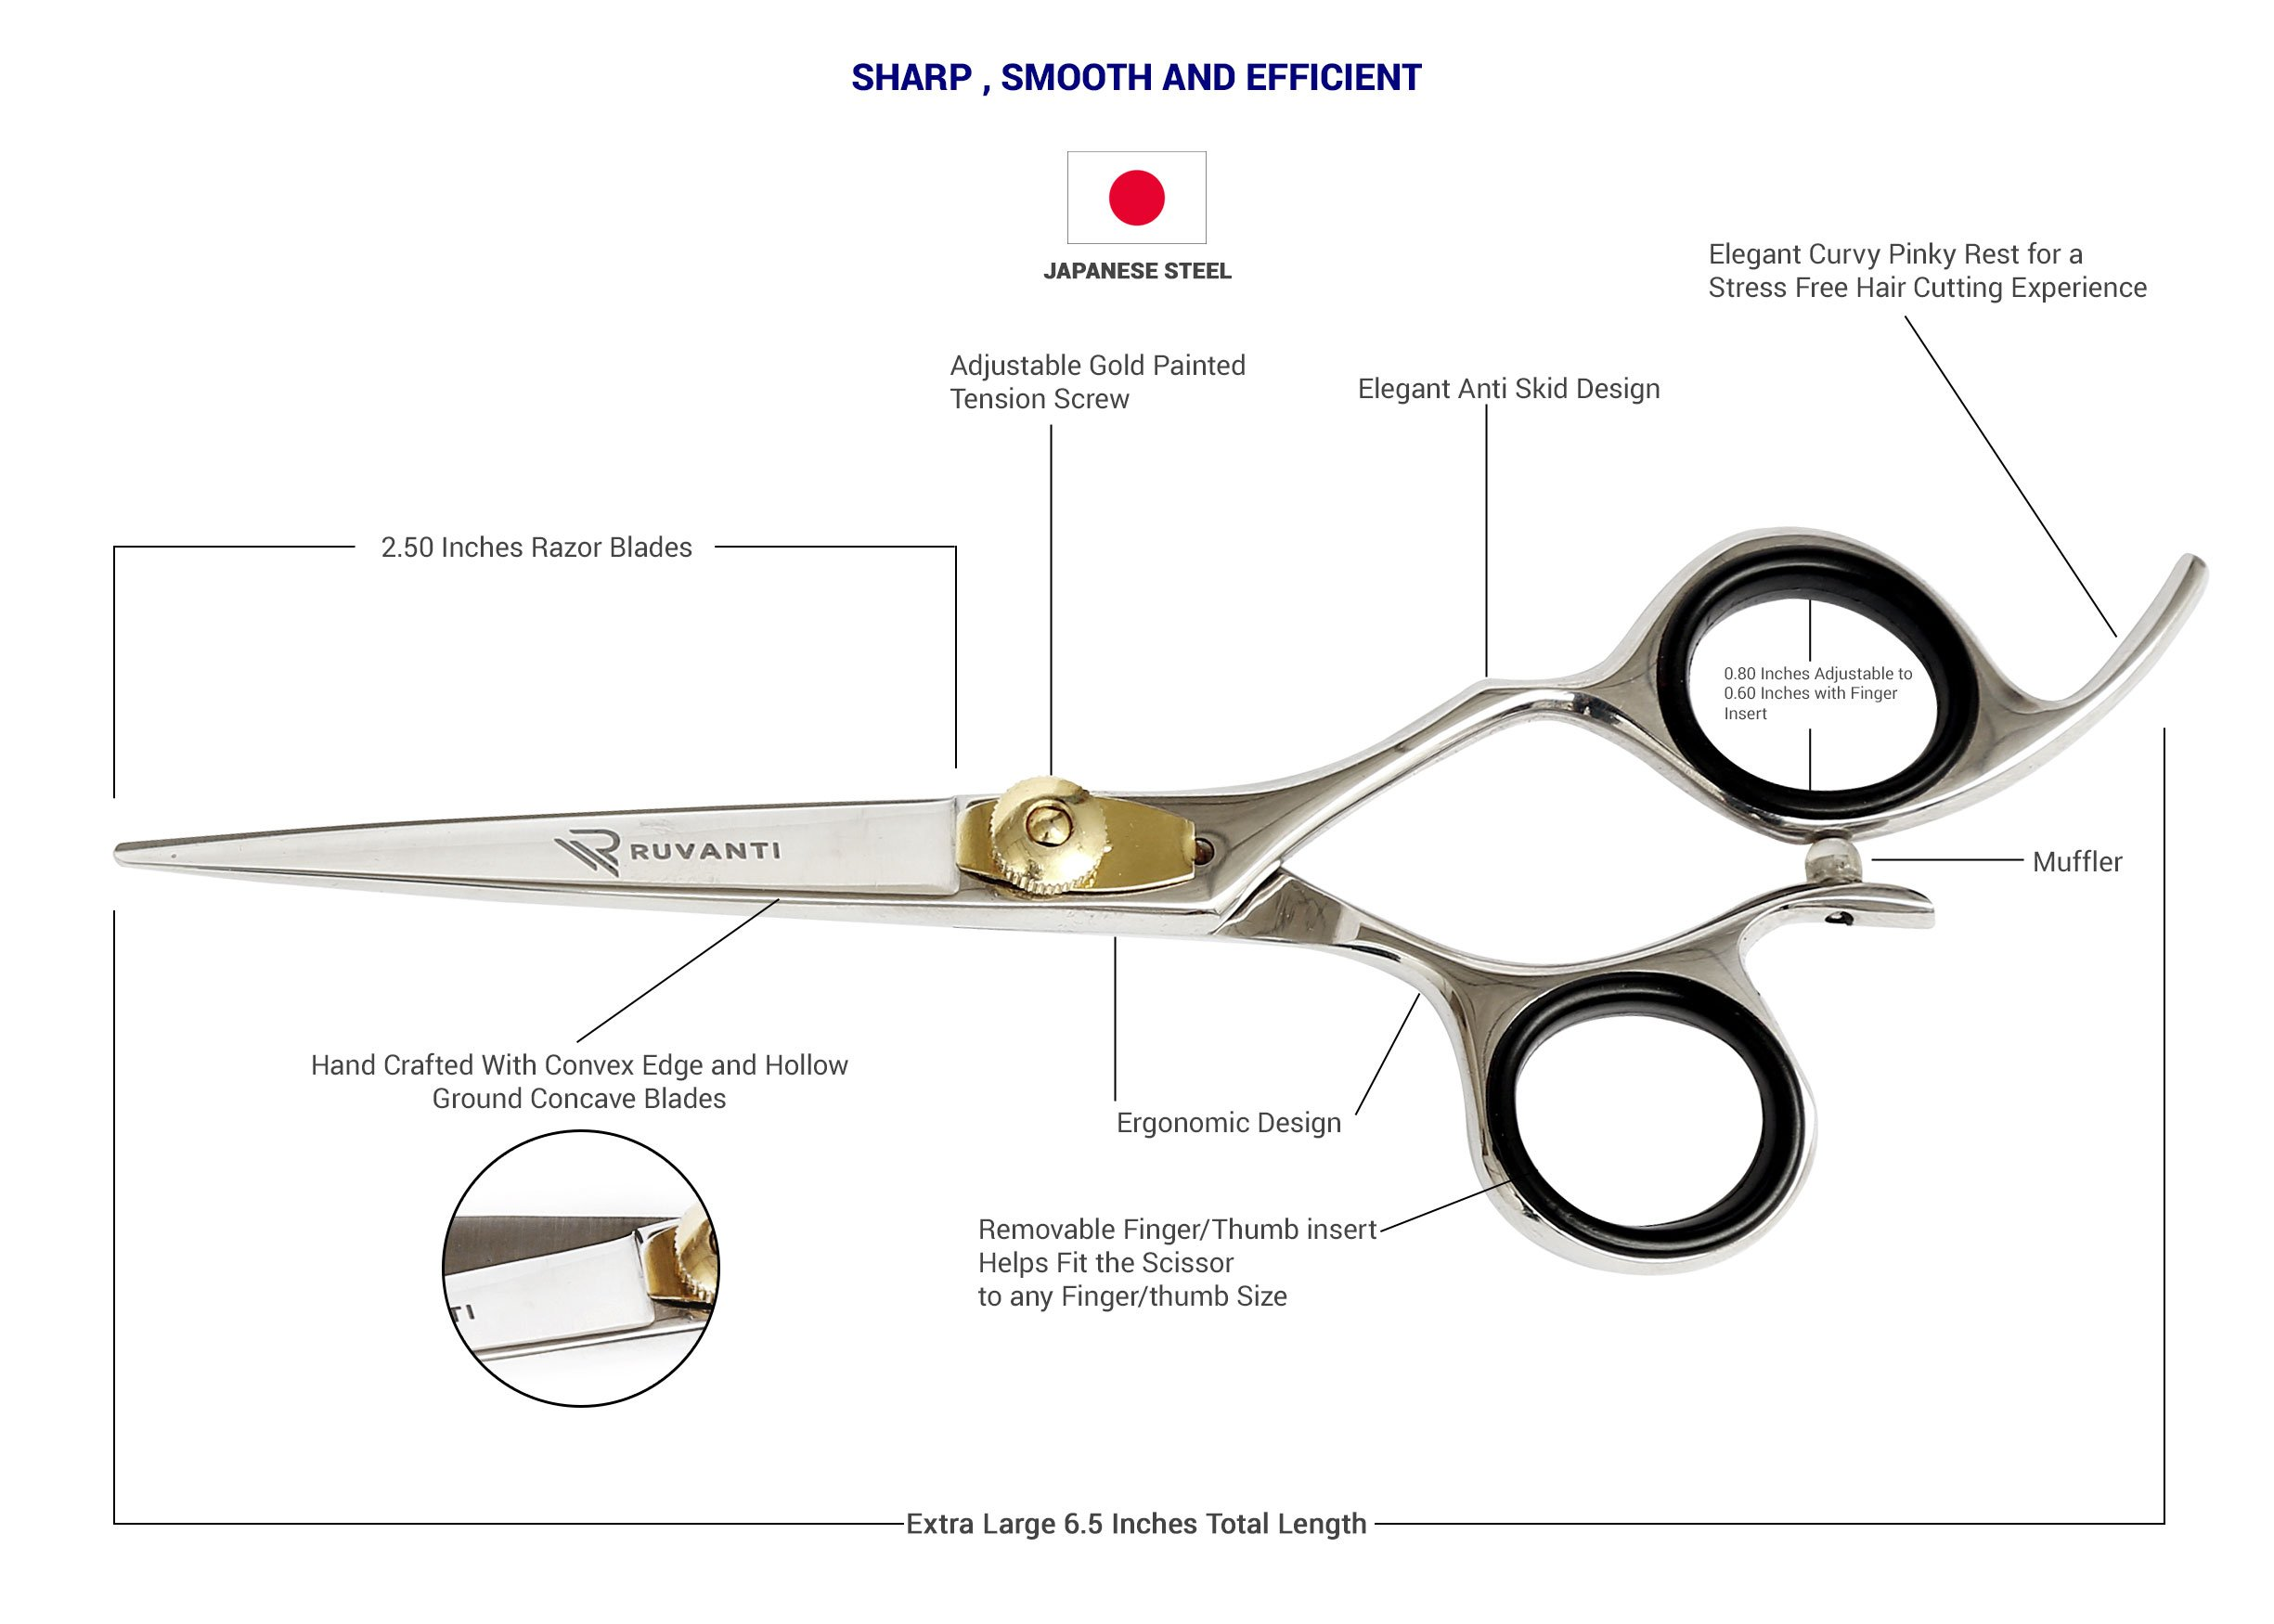 Ruvanti Professional Razor Blades Hair Scissors - Barber Hair Cutting Scissor - 6.5'' Japanese Super Cobalt Stainless Steel Hair Shear - Hairdresser Scissor/Barber Scissors with Gold Painted Screw by Ruvanti (Image #2)